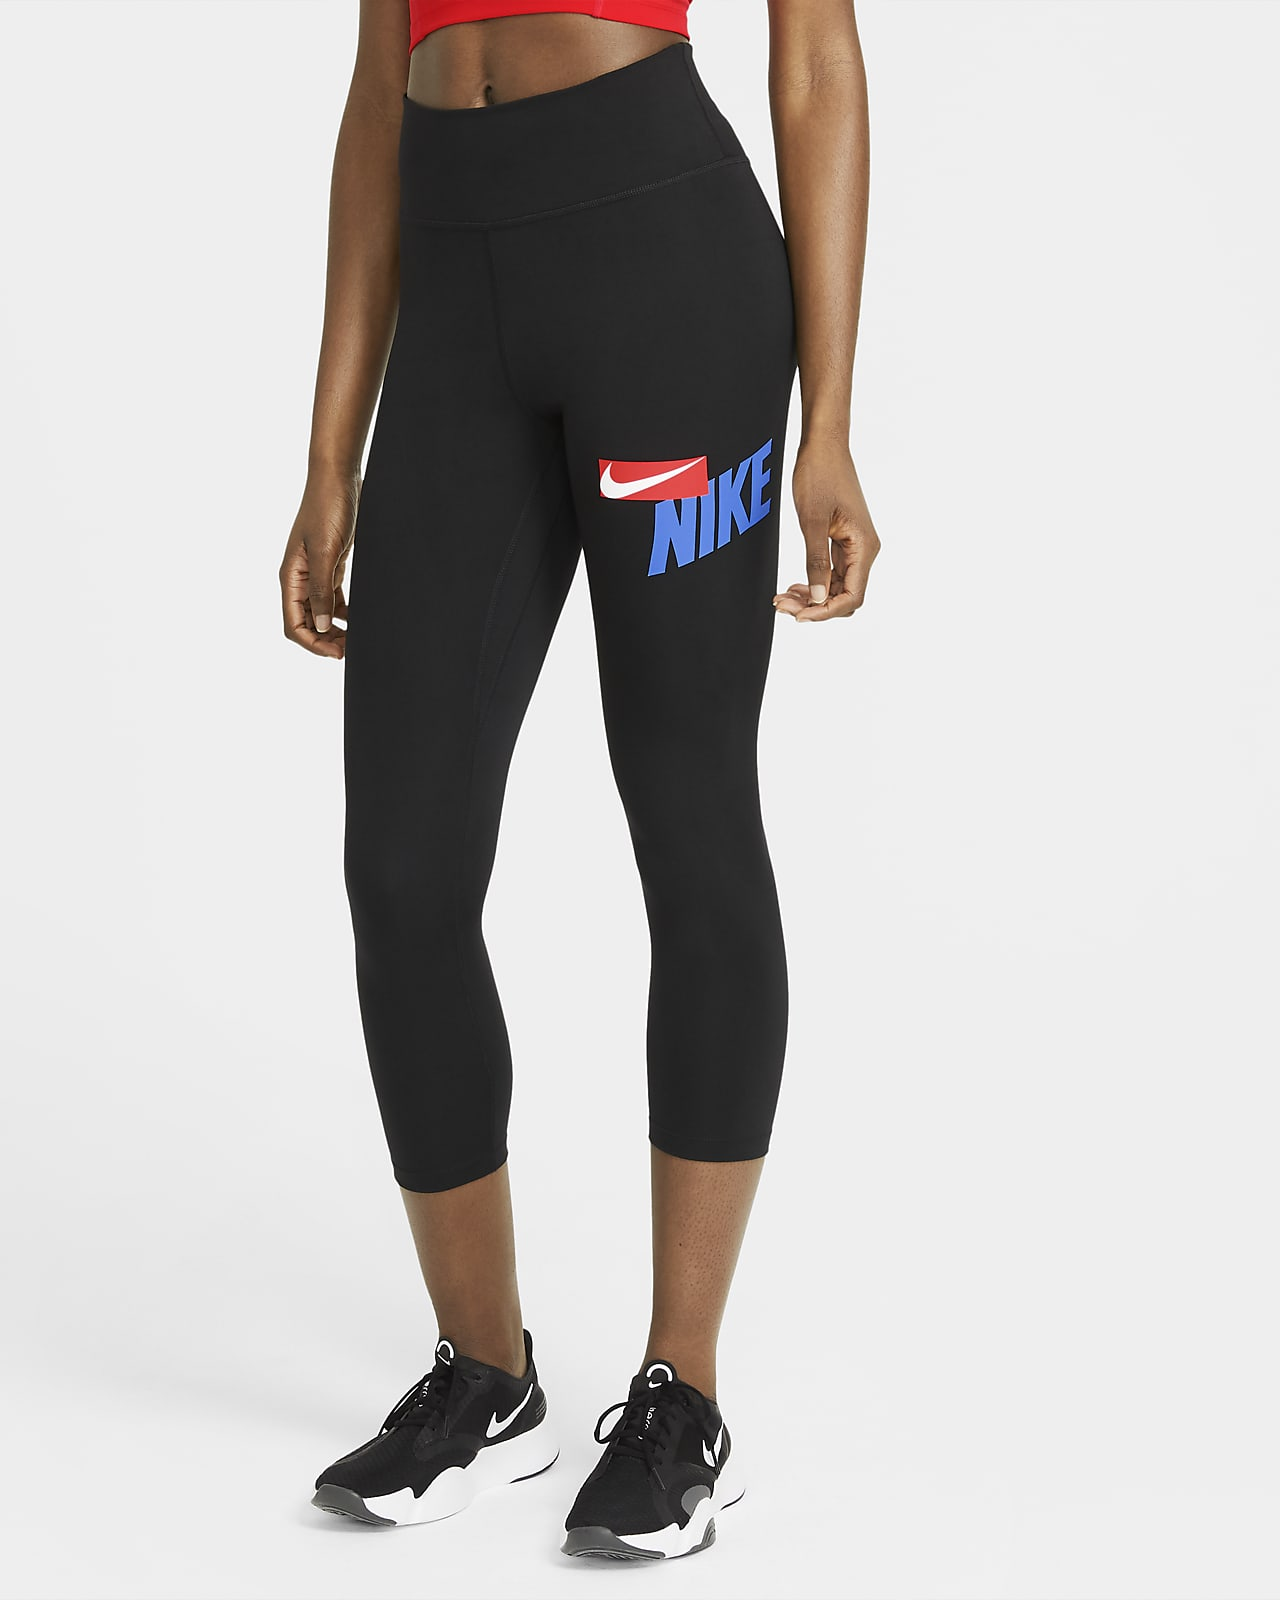 Nike One Women's Cropped Graphic Leggings